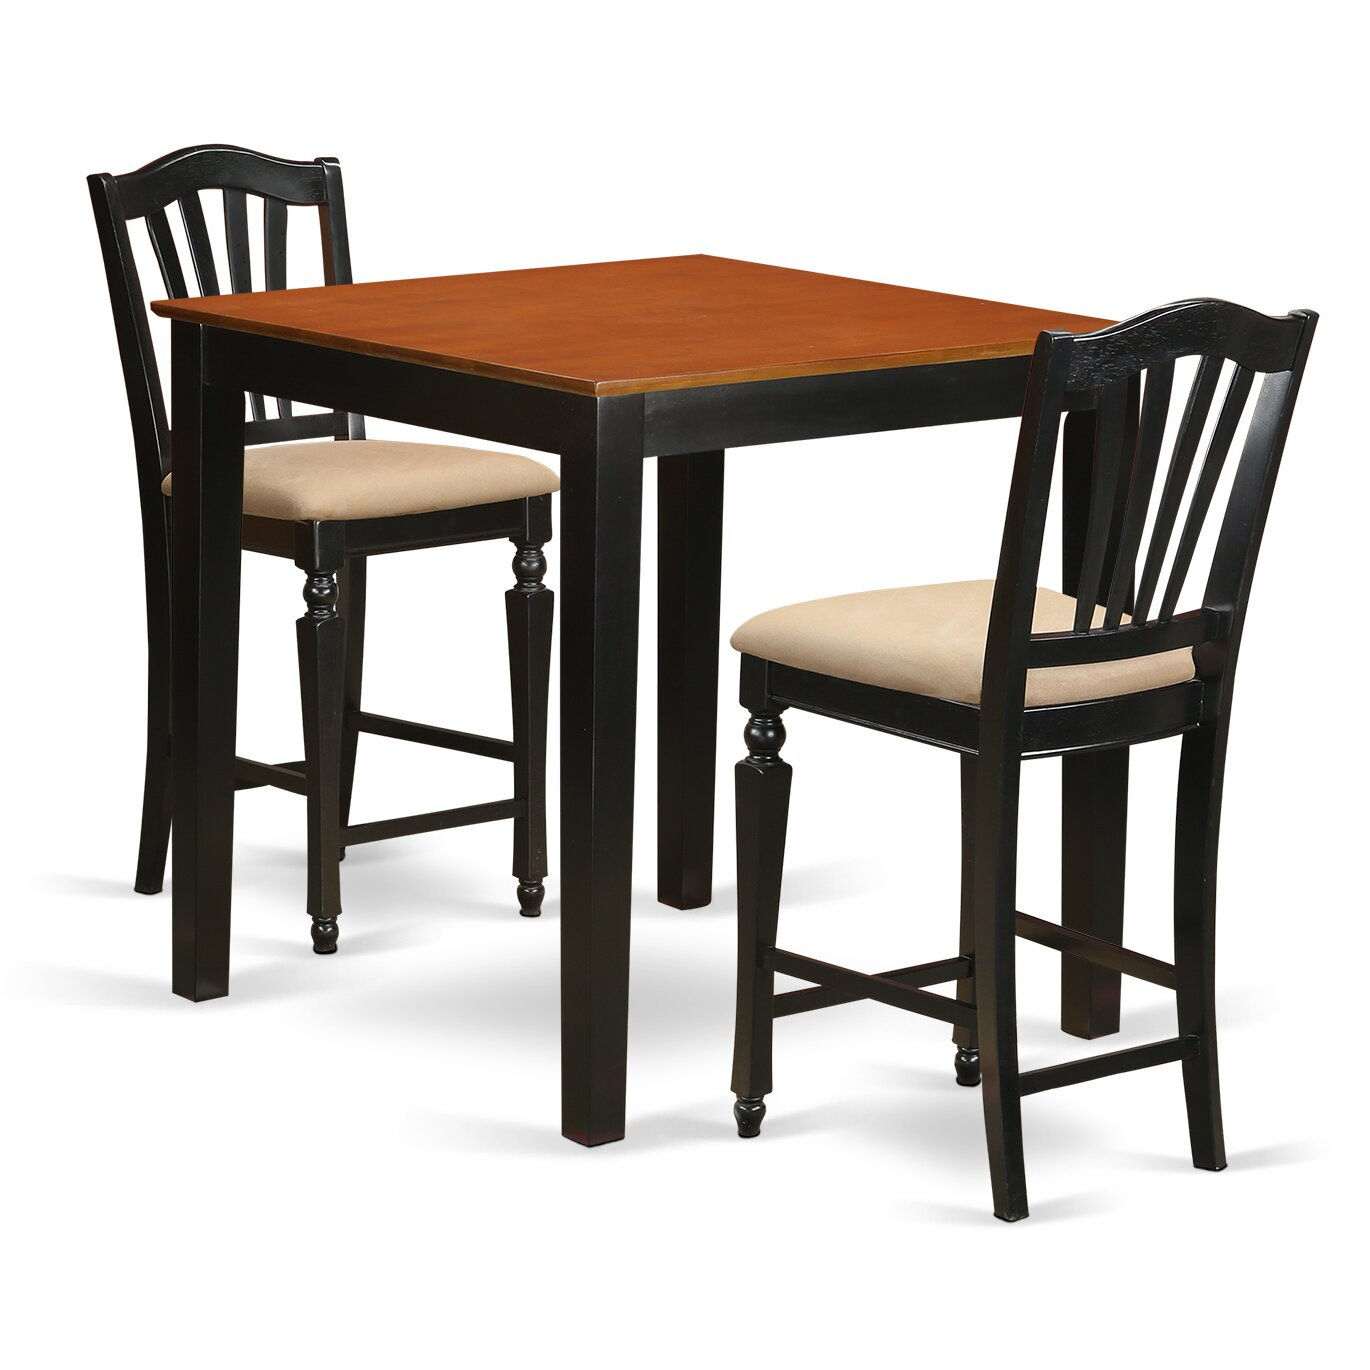 3 piece counter height pub table set wayfair. Black Bedroom Furniture Sets. Home Design Ideas